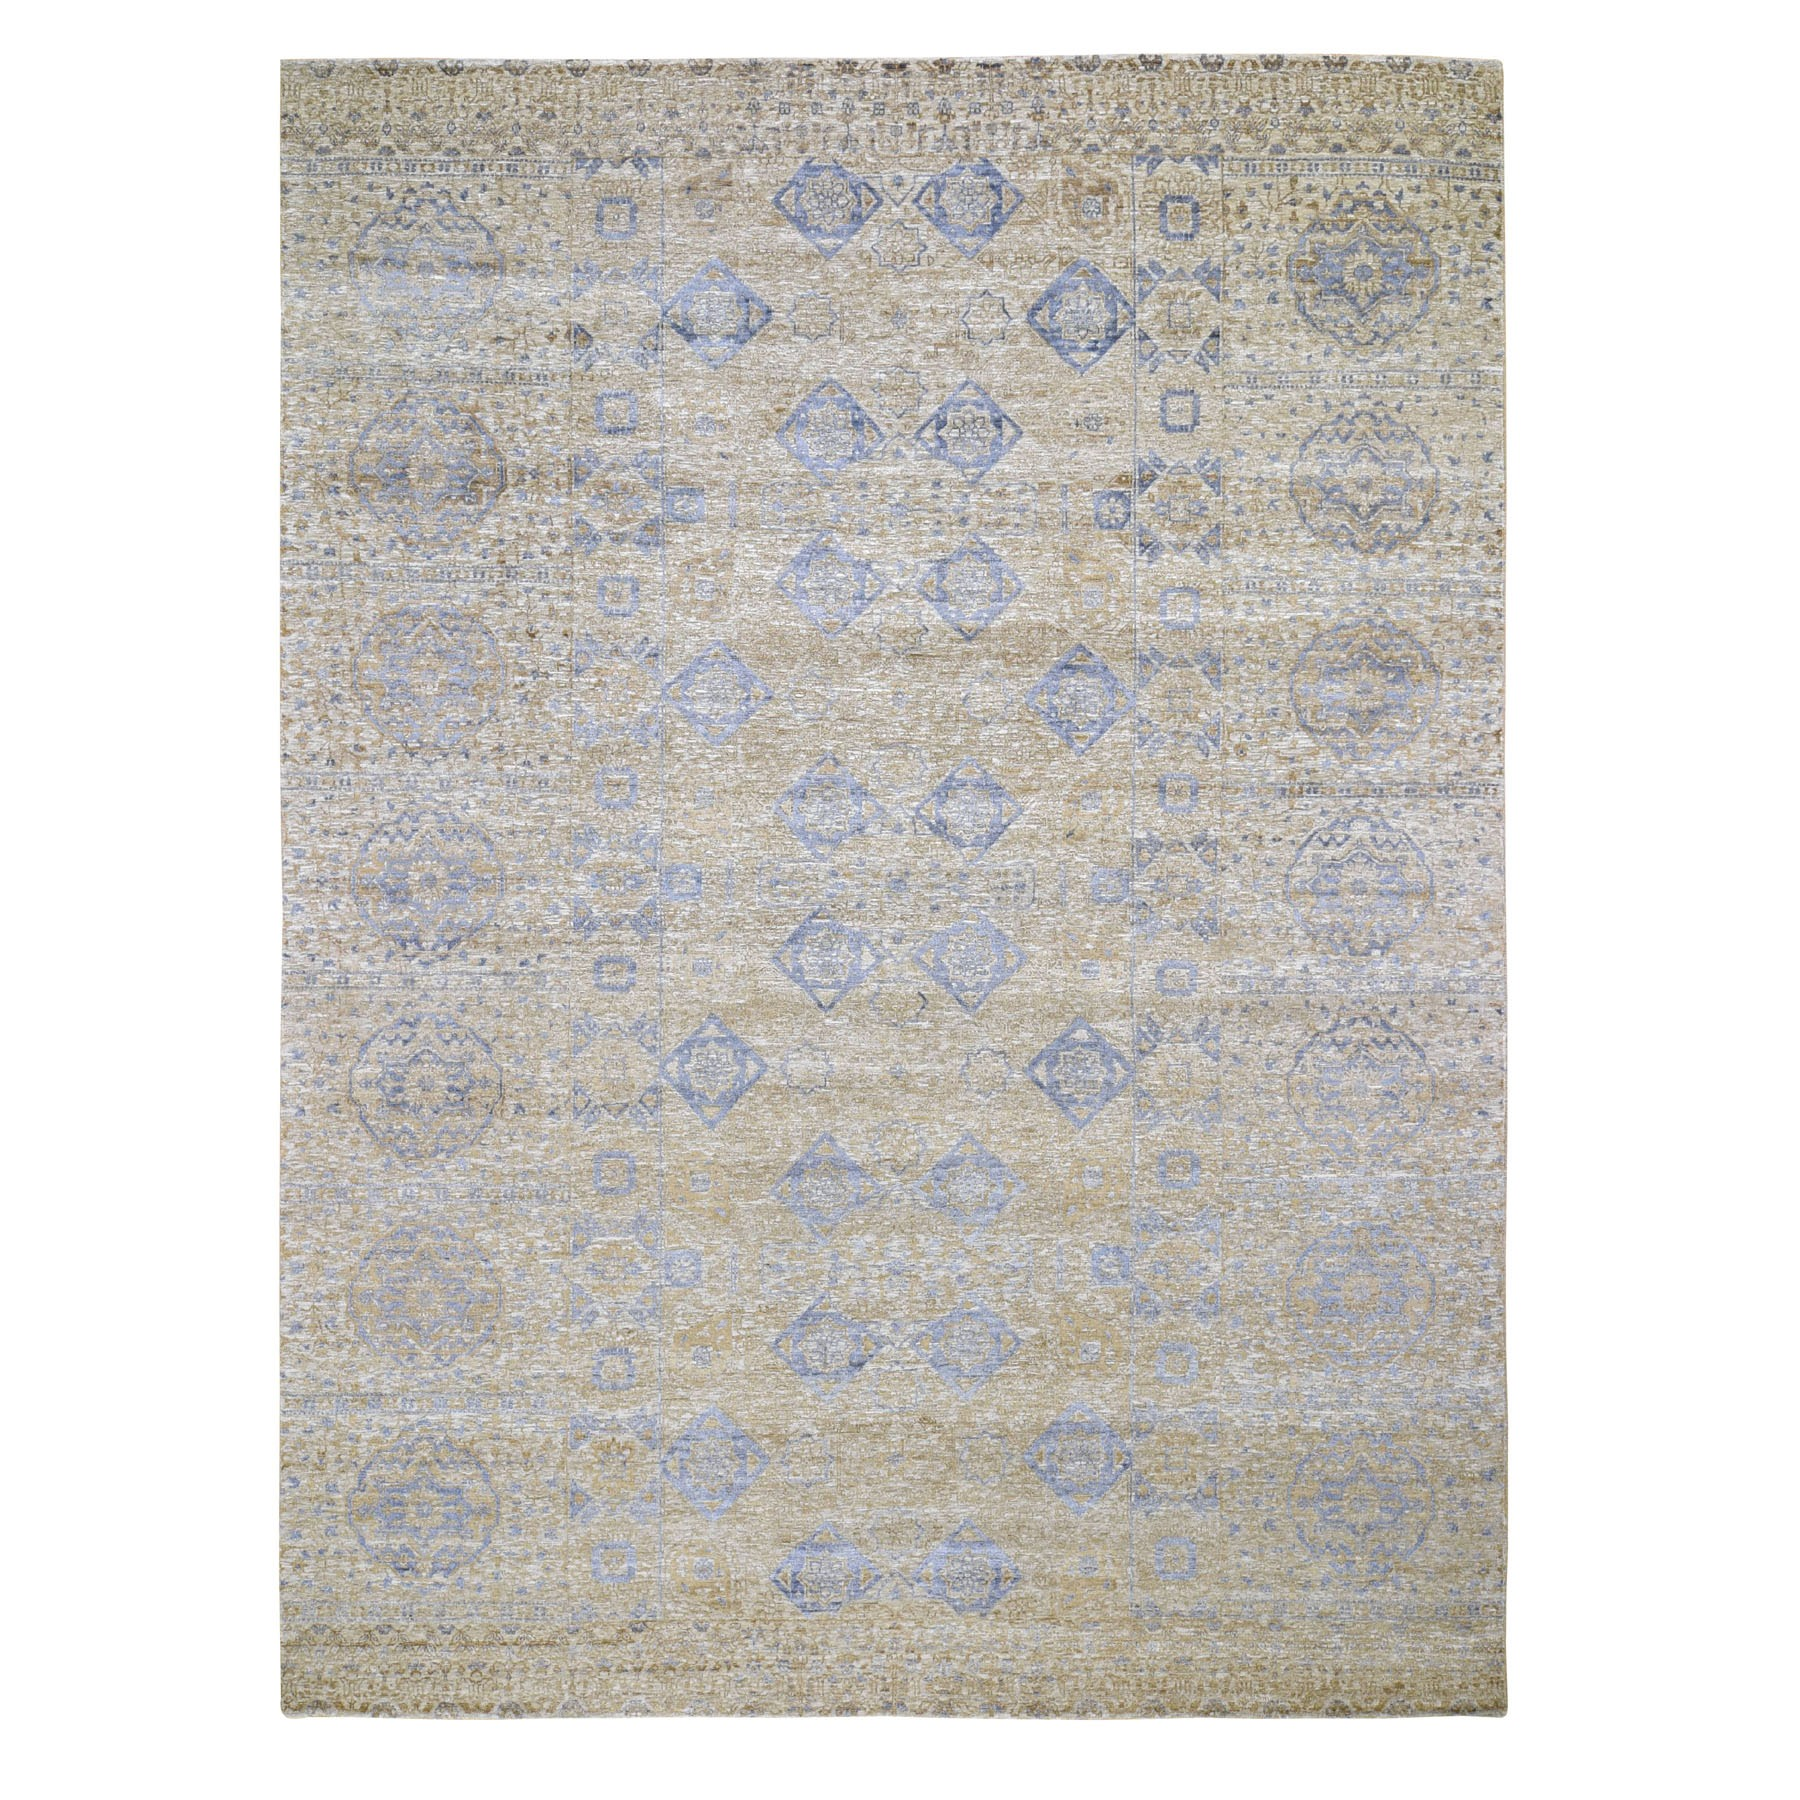 "9'X12'2"" Silk With Textured Wool Mamluk Design Hand Knotted Oriental Rug moad8c68"